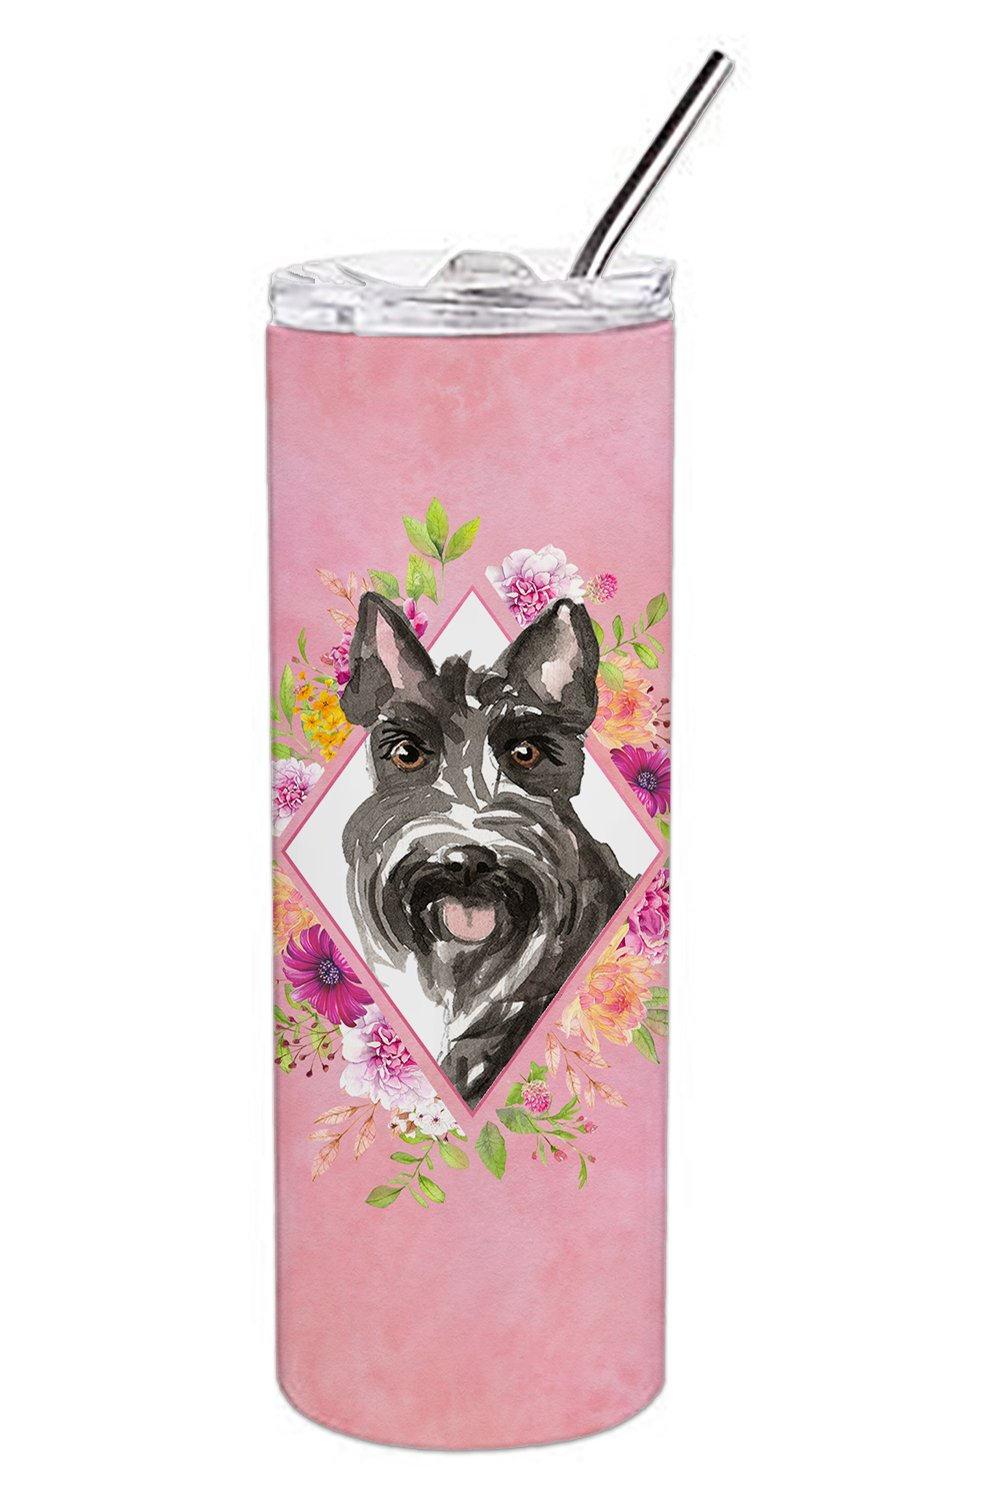 Scottish Terrier Pink Flowers Double Walled Stainless Steel 20 oz Skinny Tumbler CK4214TBL20 by Caroline's Treasures